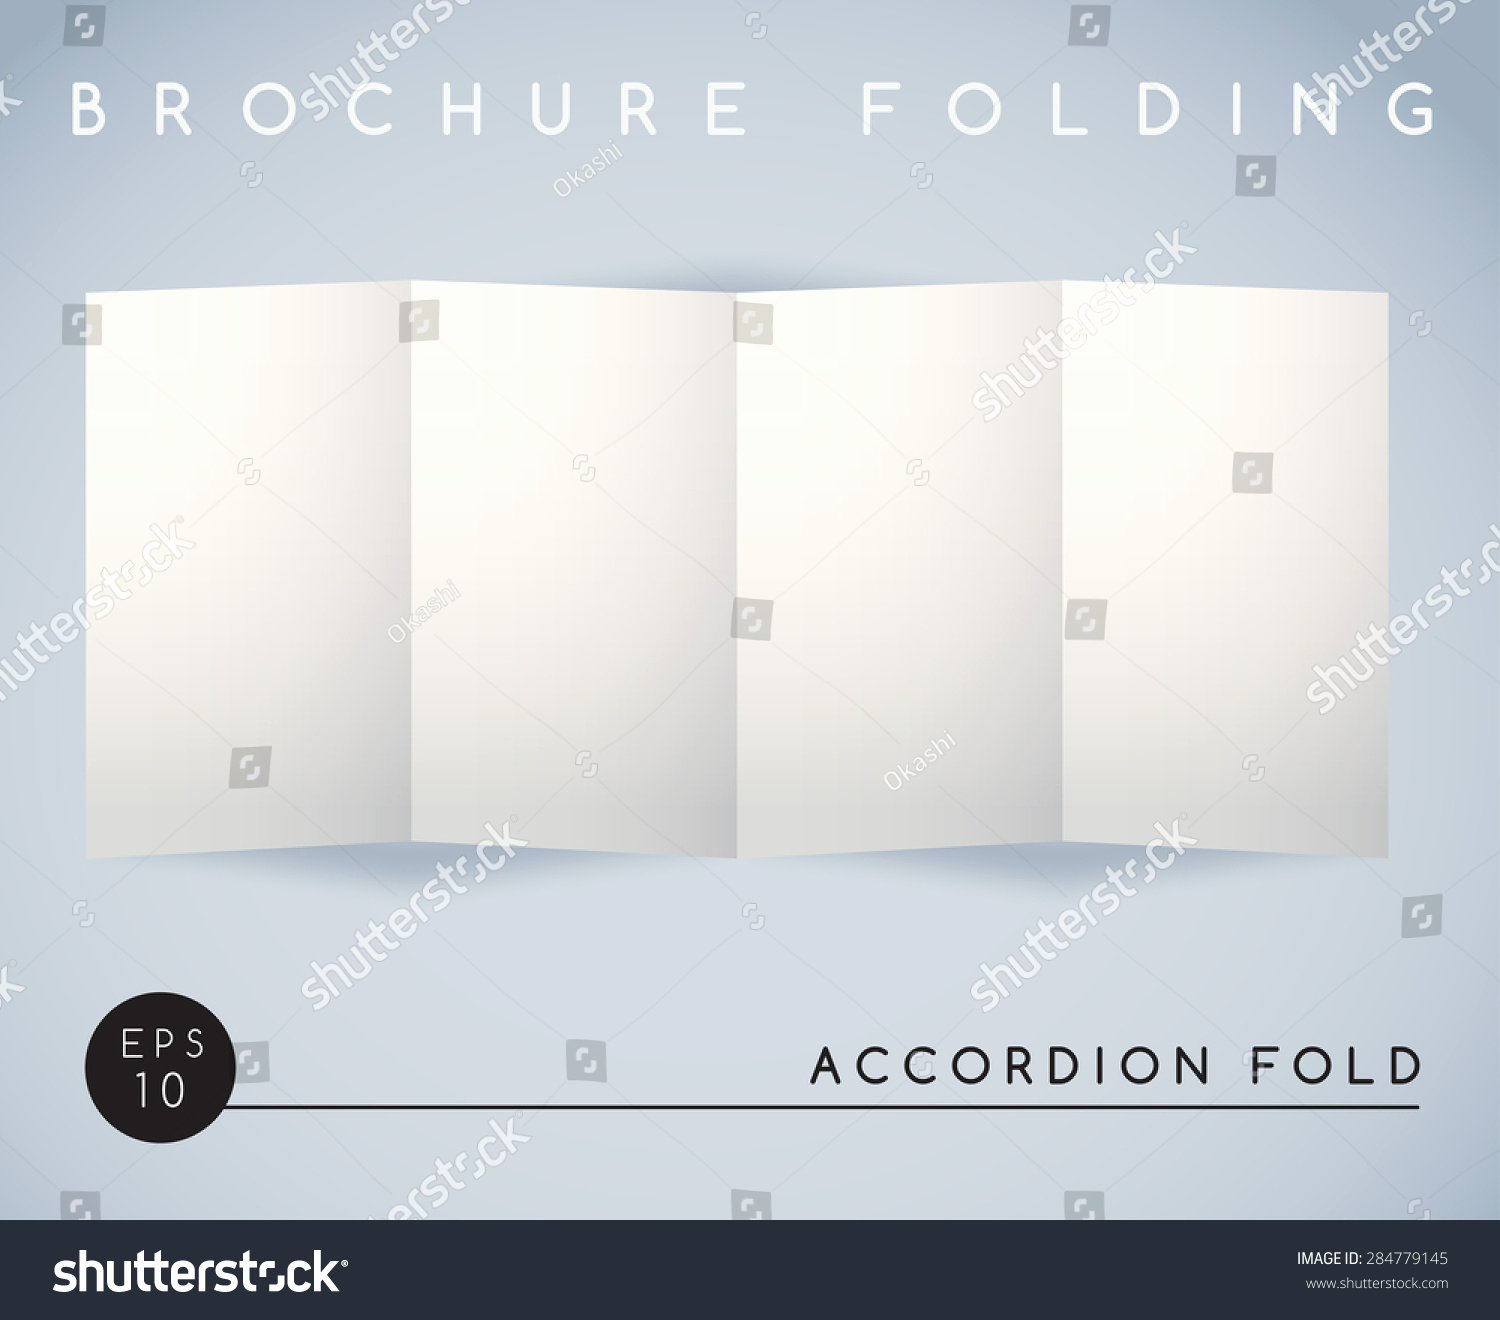 Accordion Fold Brochure Template Inspirational Brochure Folding Accordion Fold 4 Panel Vector